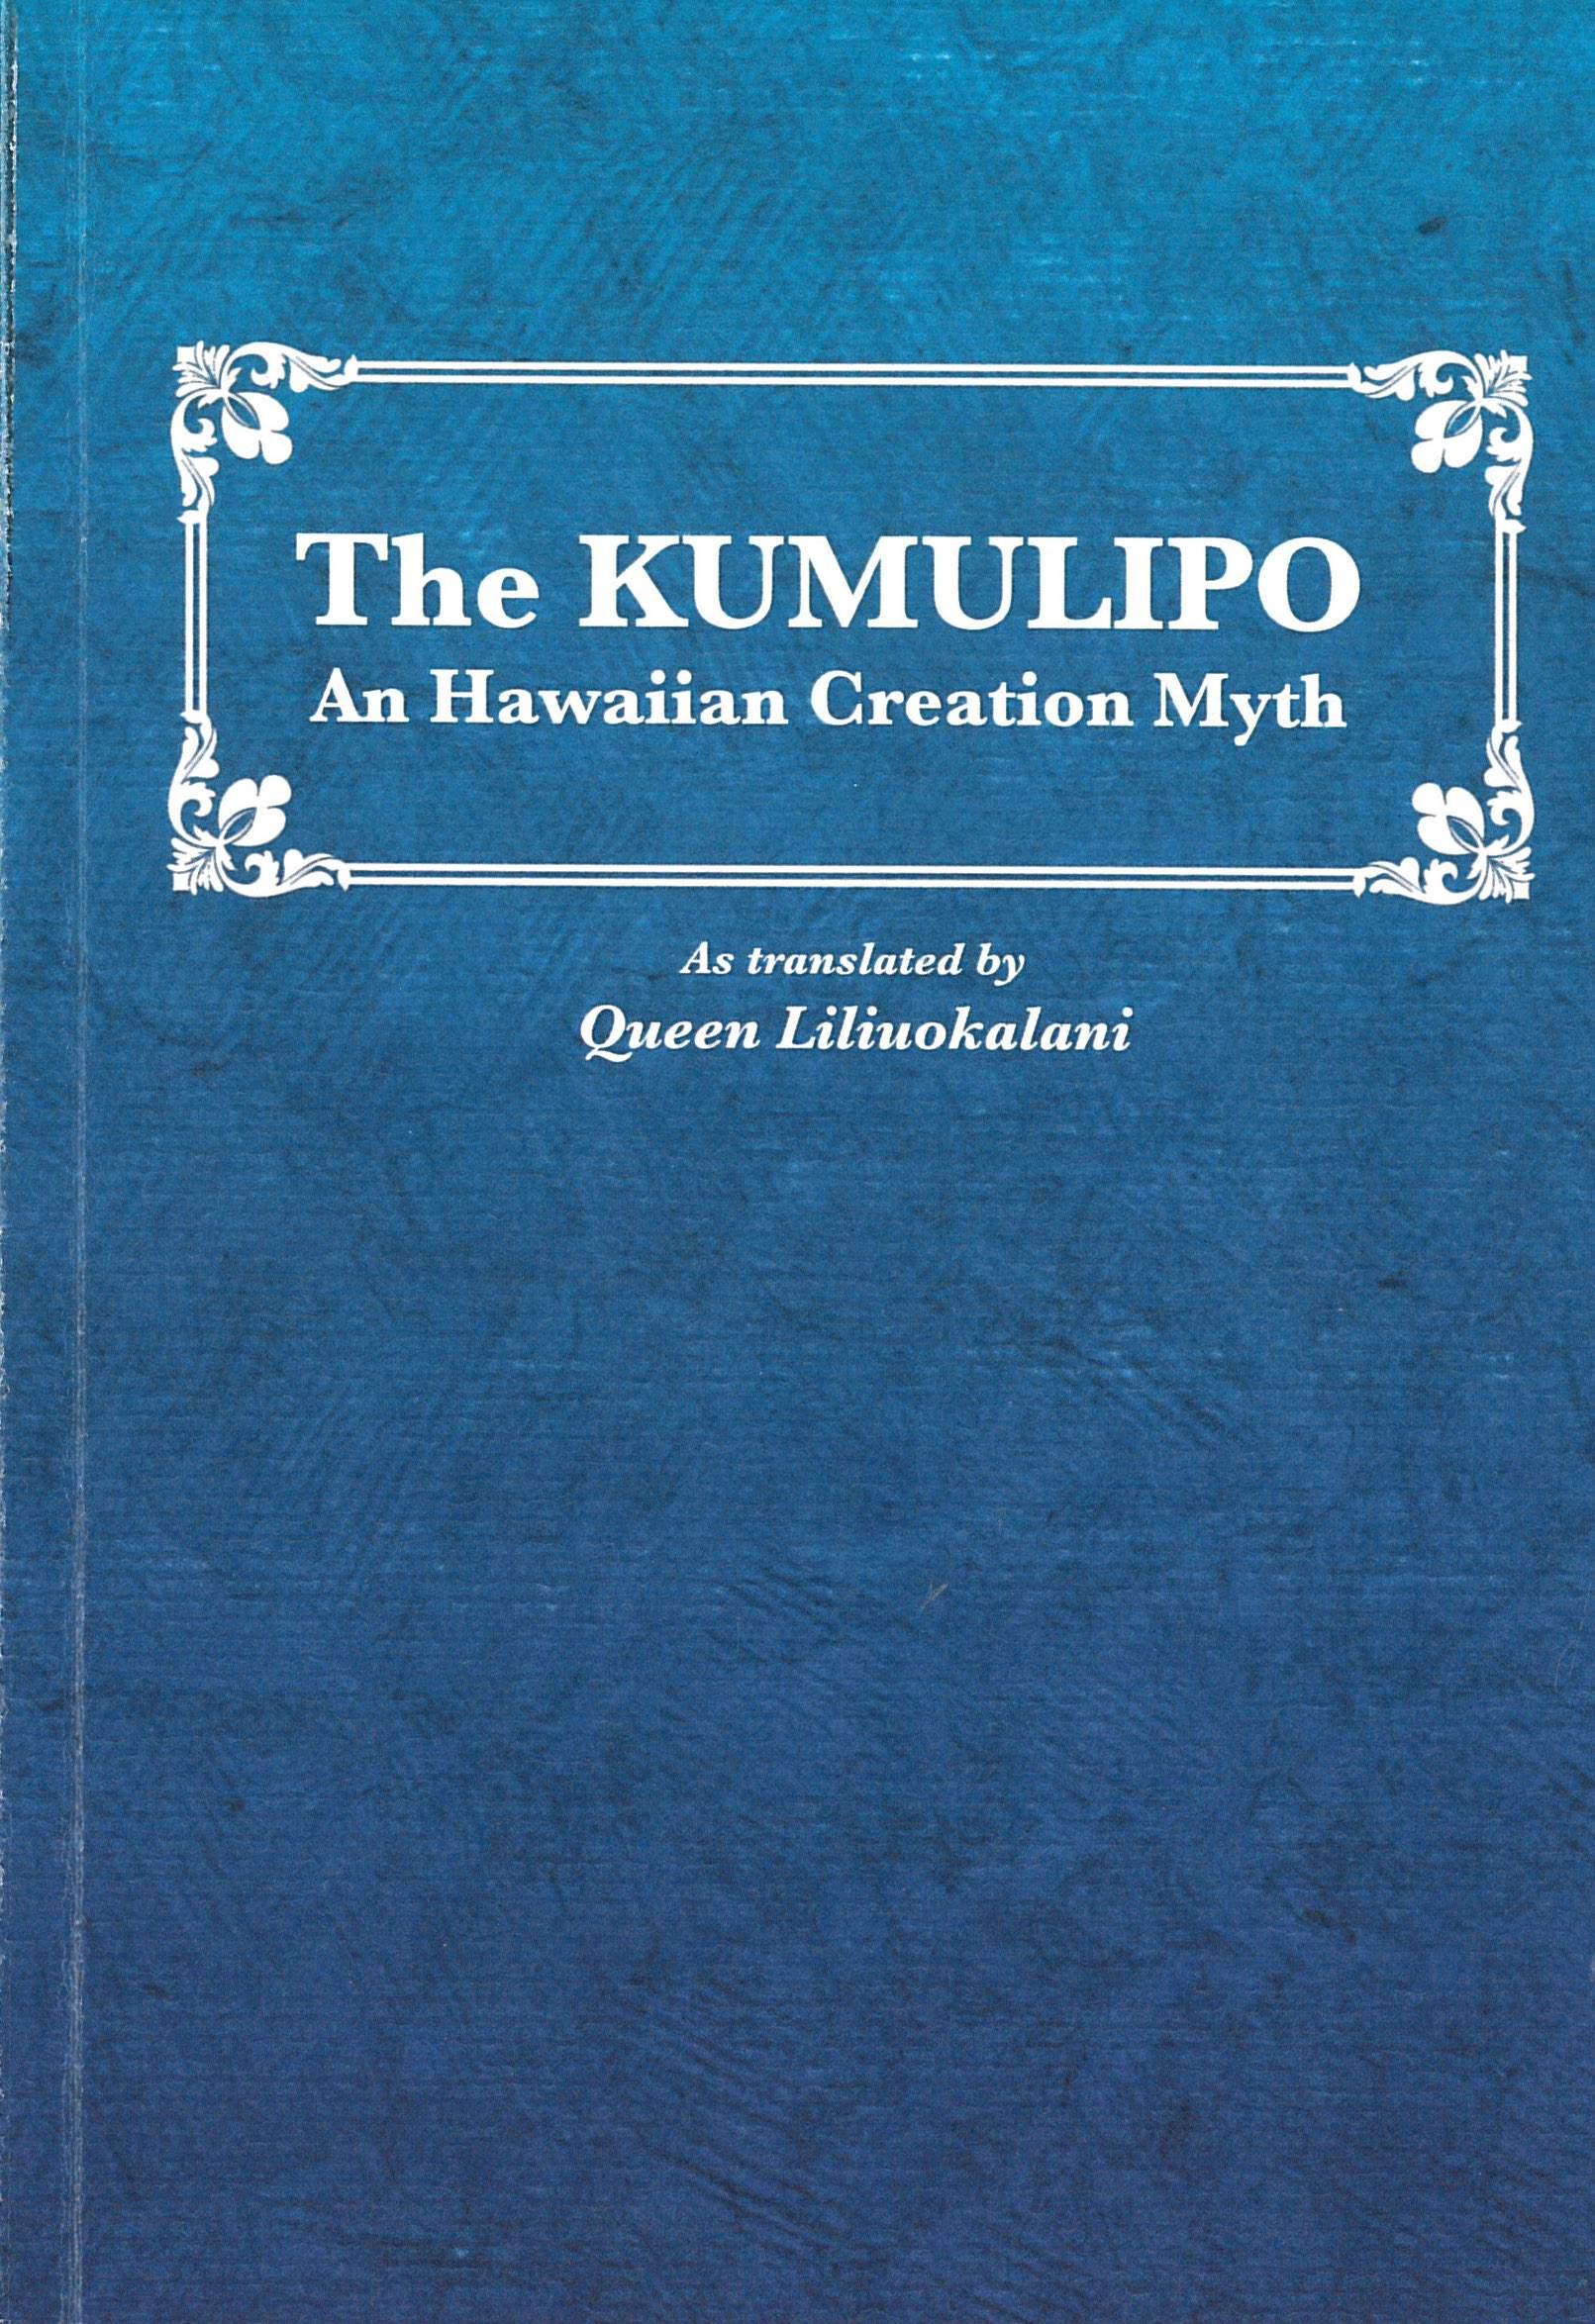 The Kumulipo A Hawaiian Creation Myth